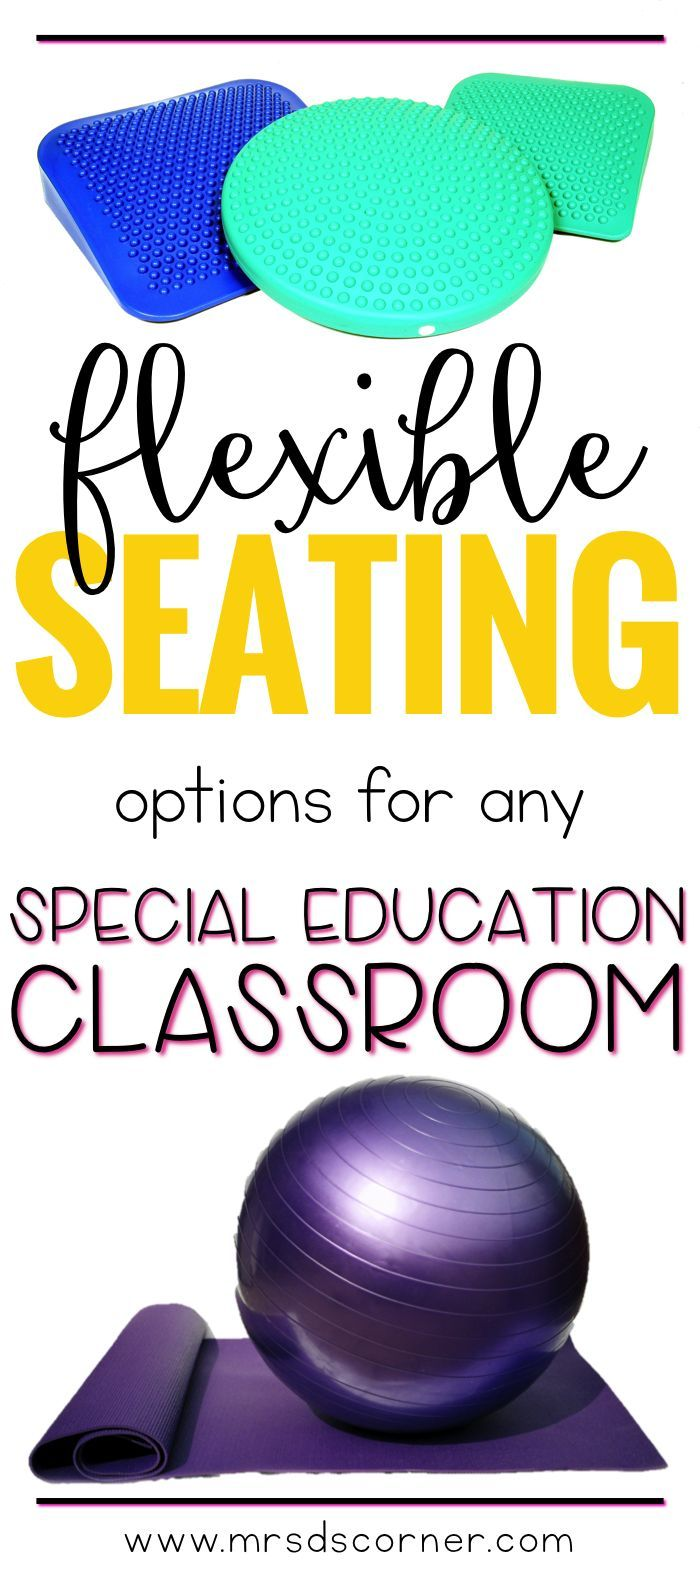 Flexible seating options for any special education classroom. Blog Post at Mrs. D's Corner. Flexible seating is a wonderful, wonderful thing. It allows students to move around the classroom, work and communicate openly and collaboratively, while fostering creativity and critical thinking skills.